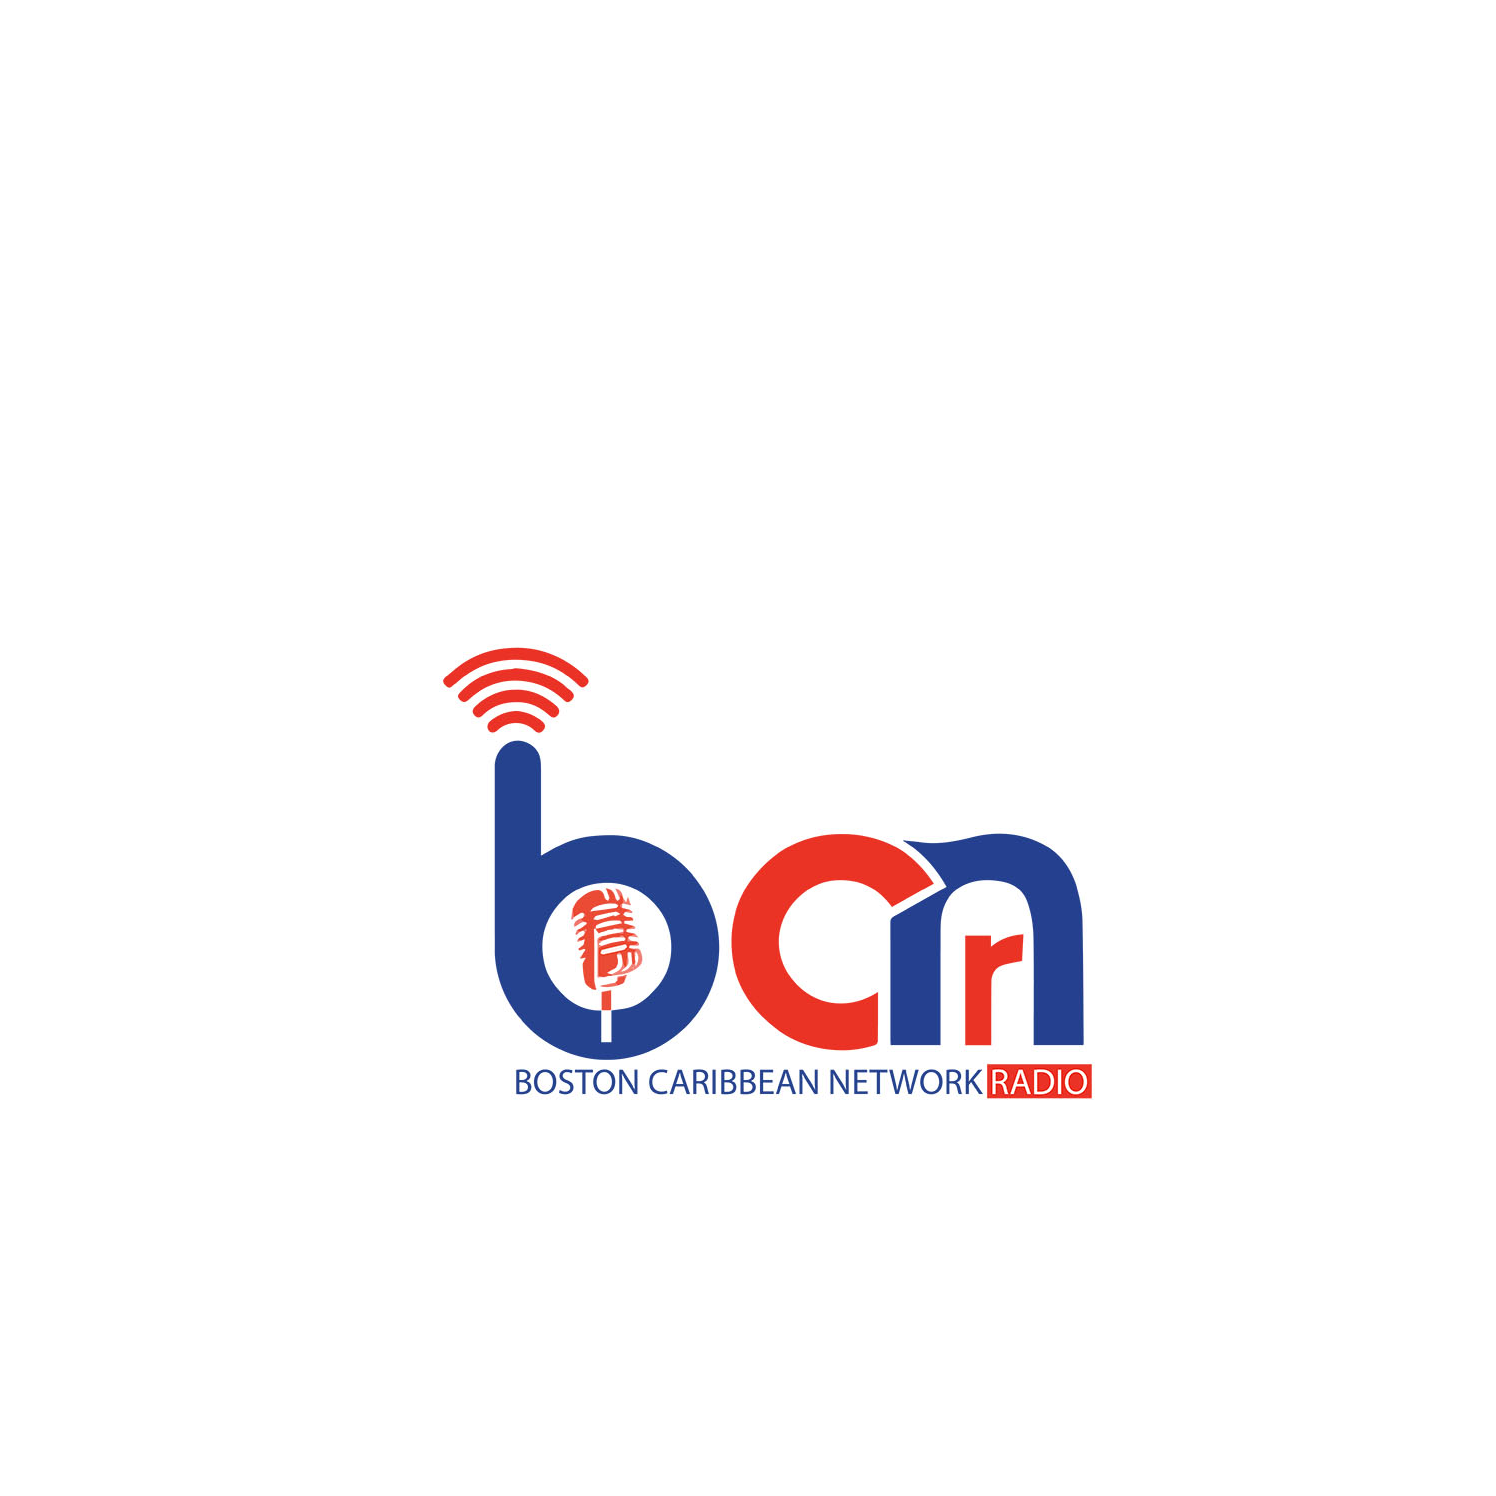 Boston Caribbean Network Radio